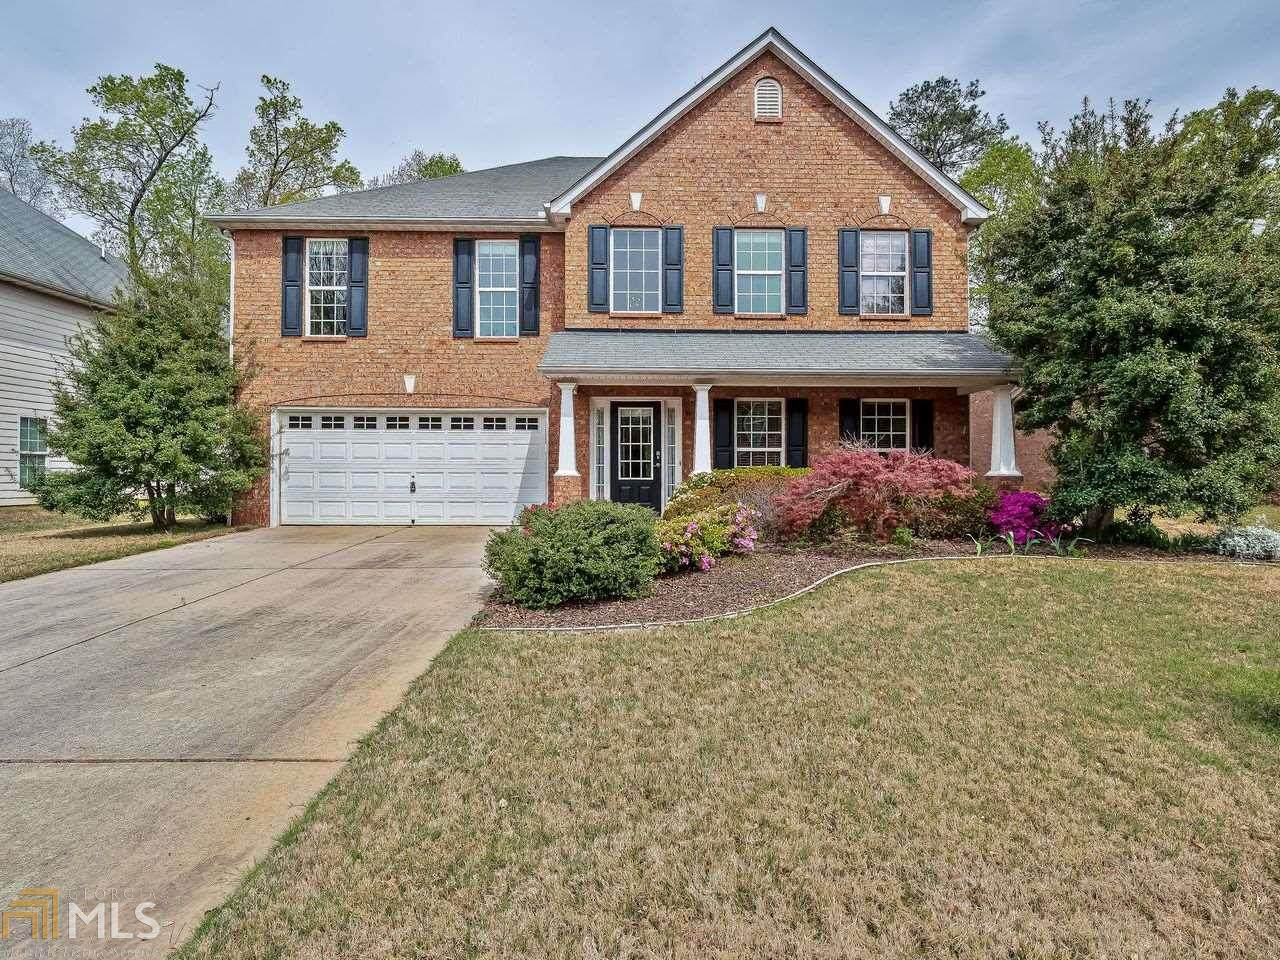 5516 Mossy View Dr - Photo 1